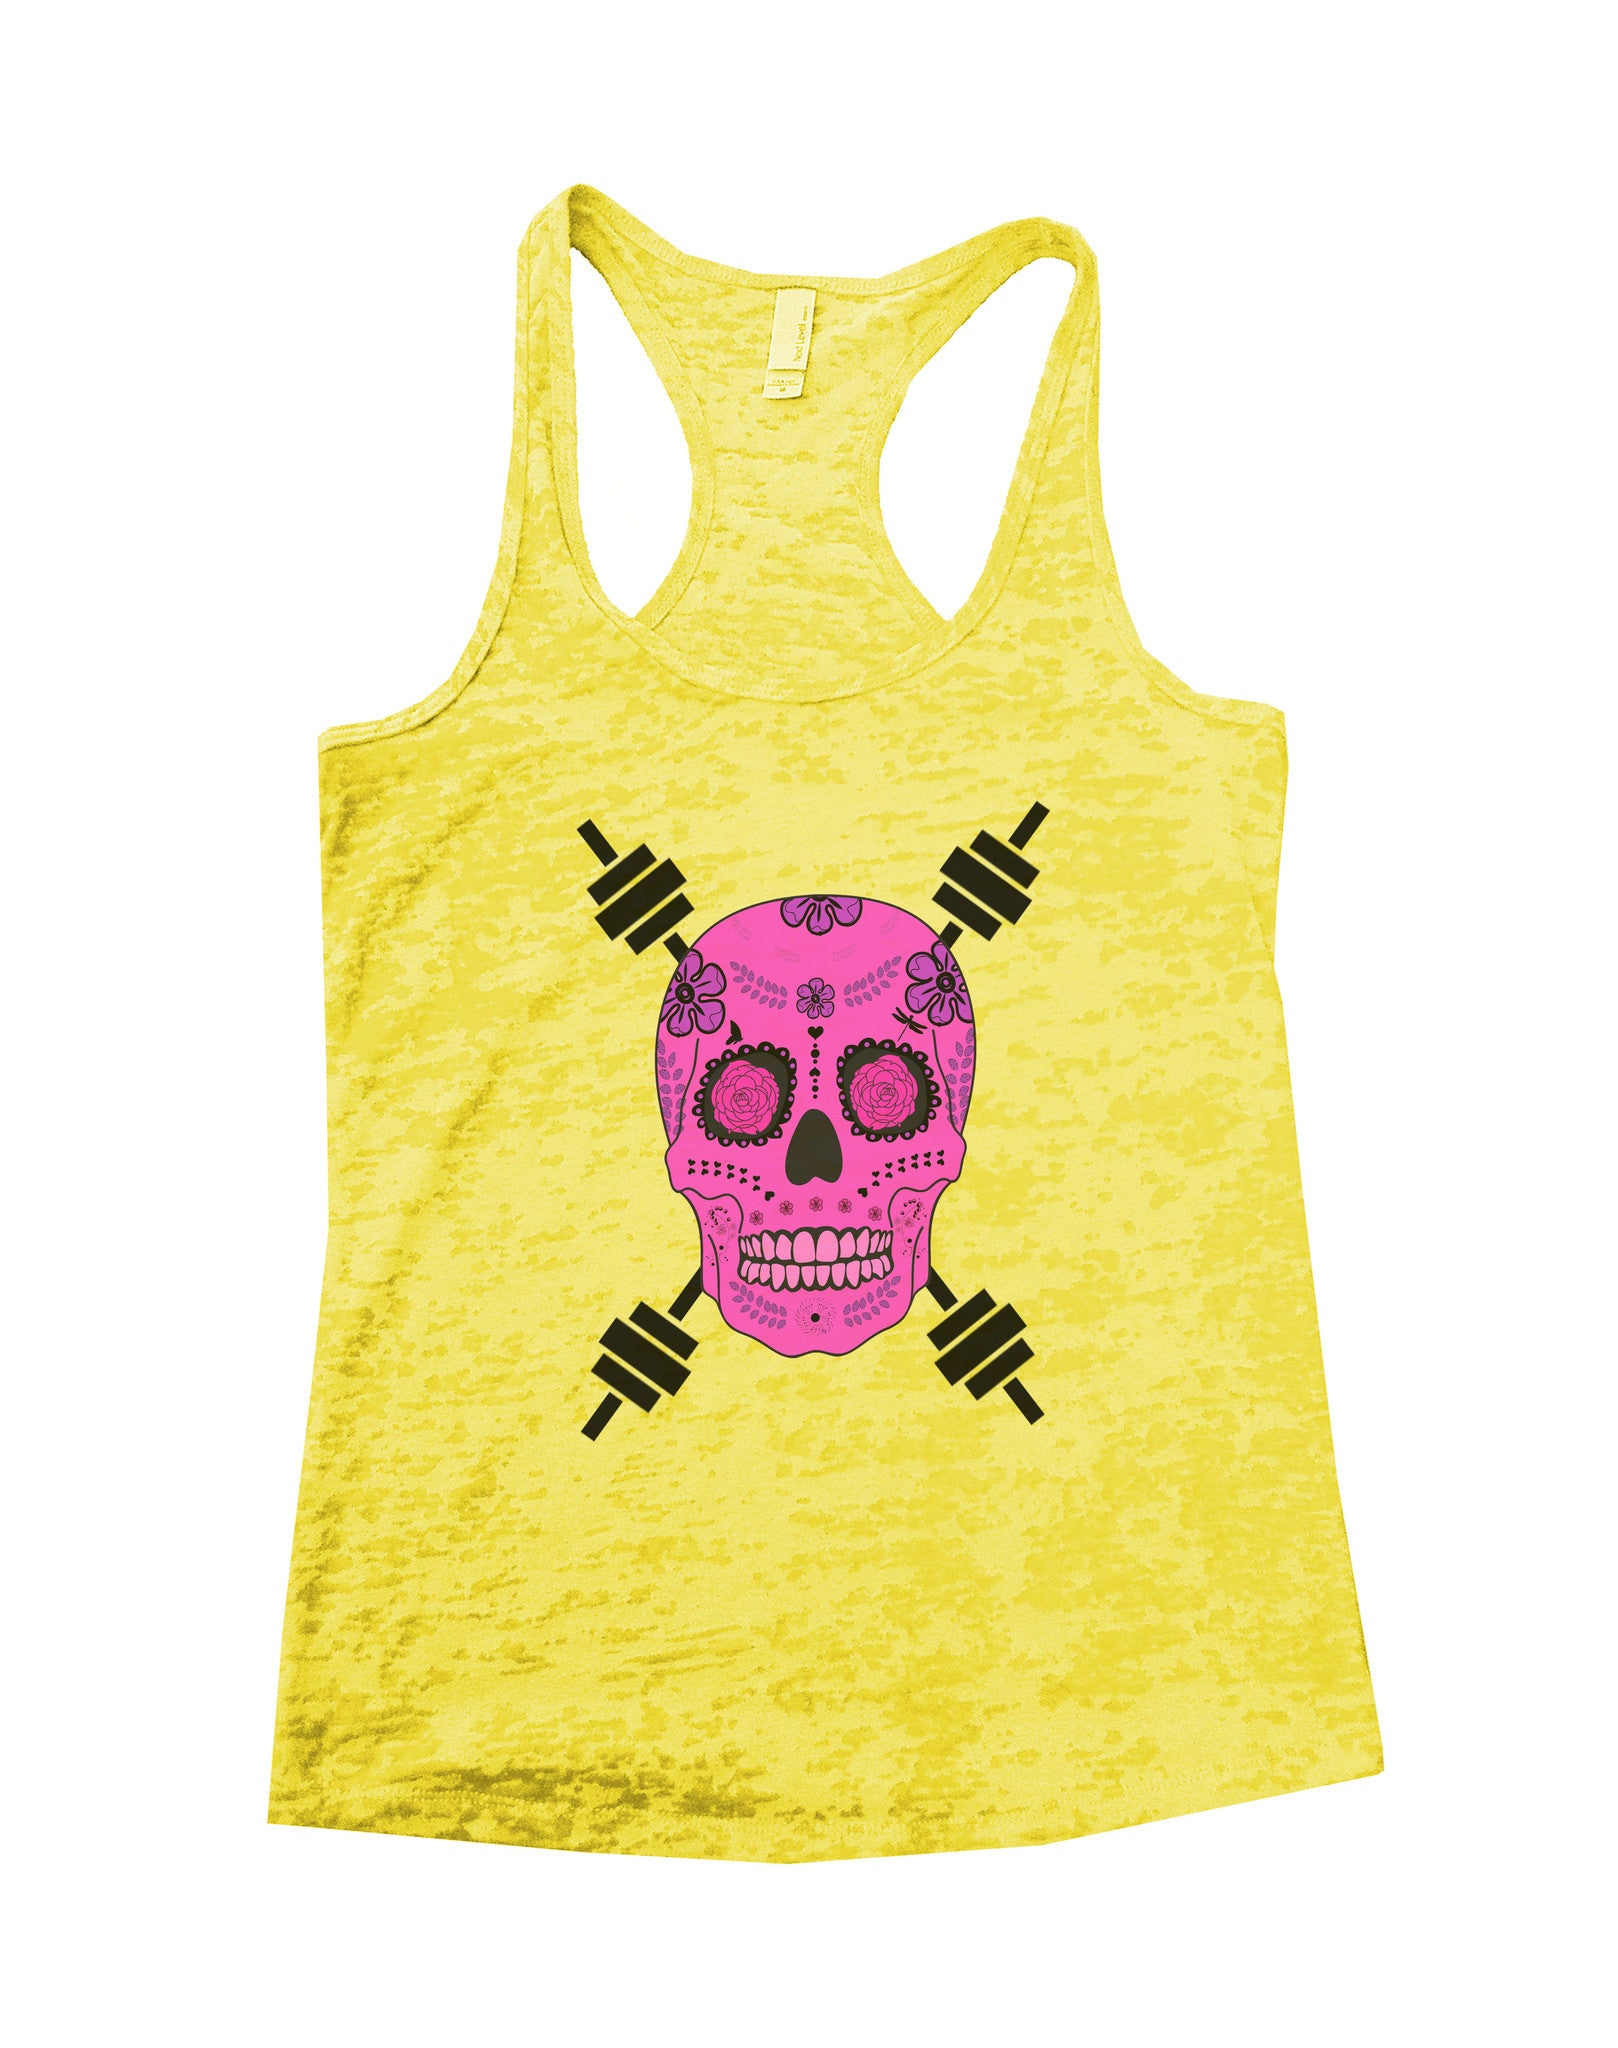 Skull And Weight Bars Burnout Tank Top By BurnoutTankTops.com - 500 - Funny Shirts Tank Tops Burnouts and Triblends  - 6